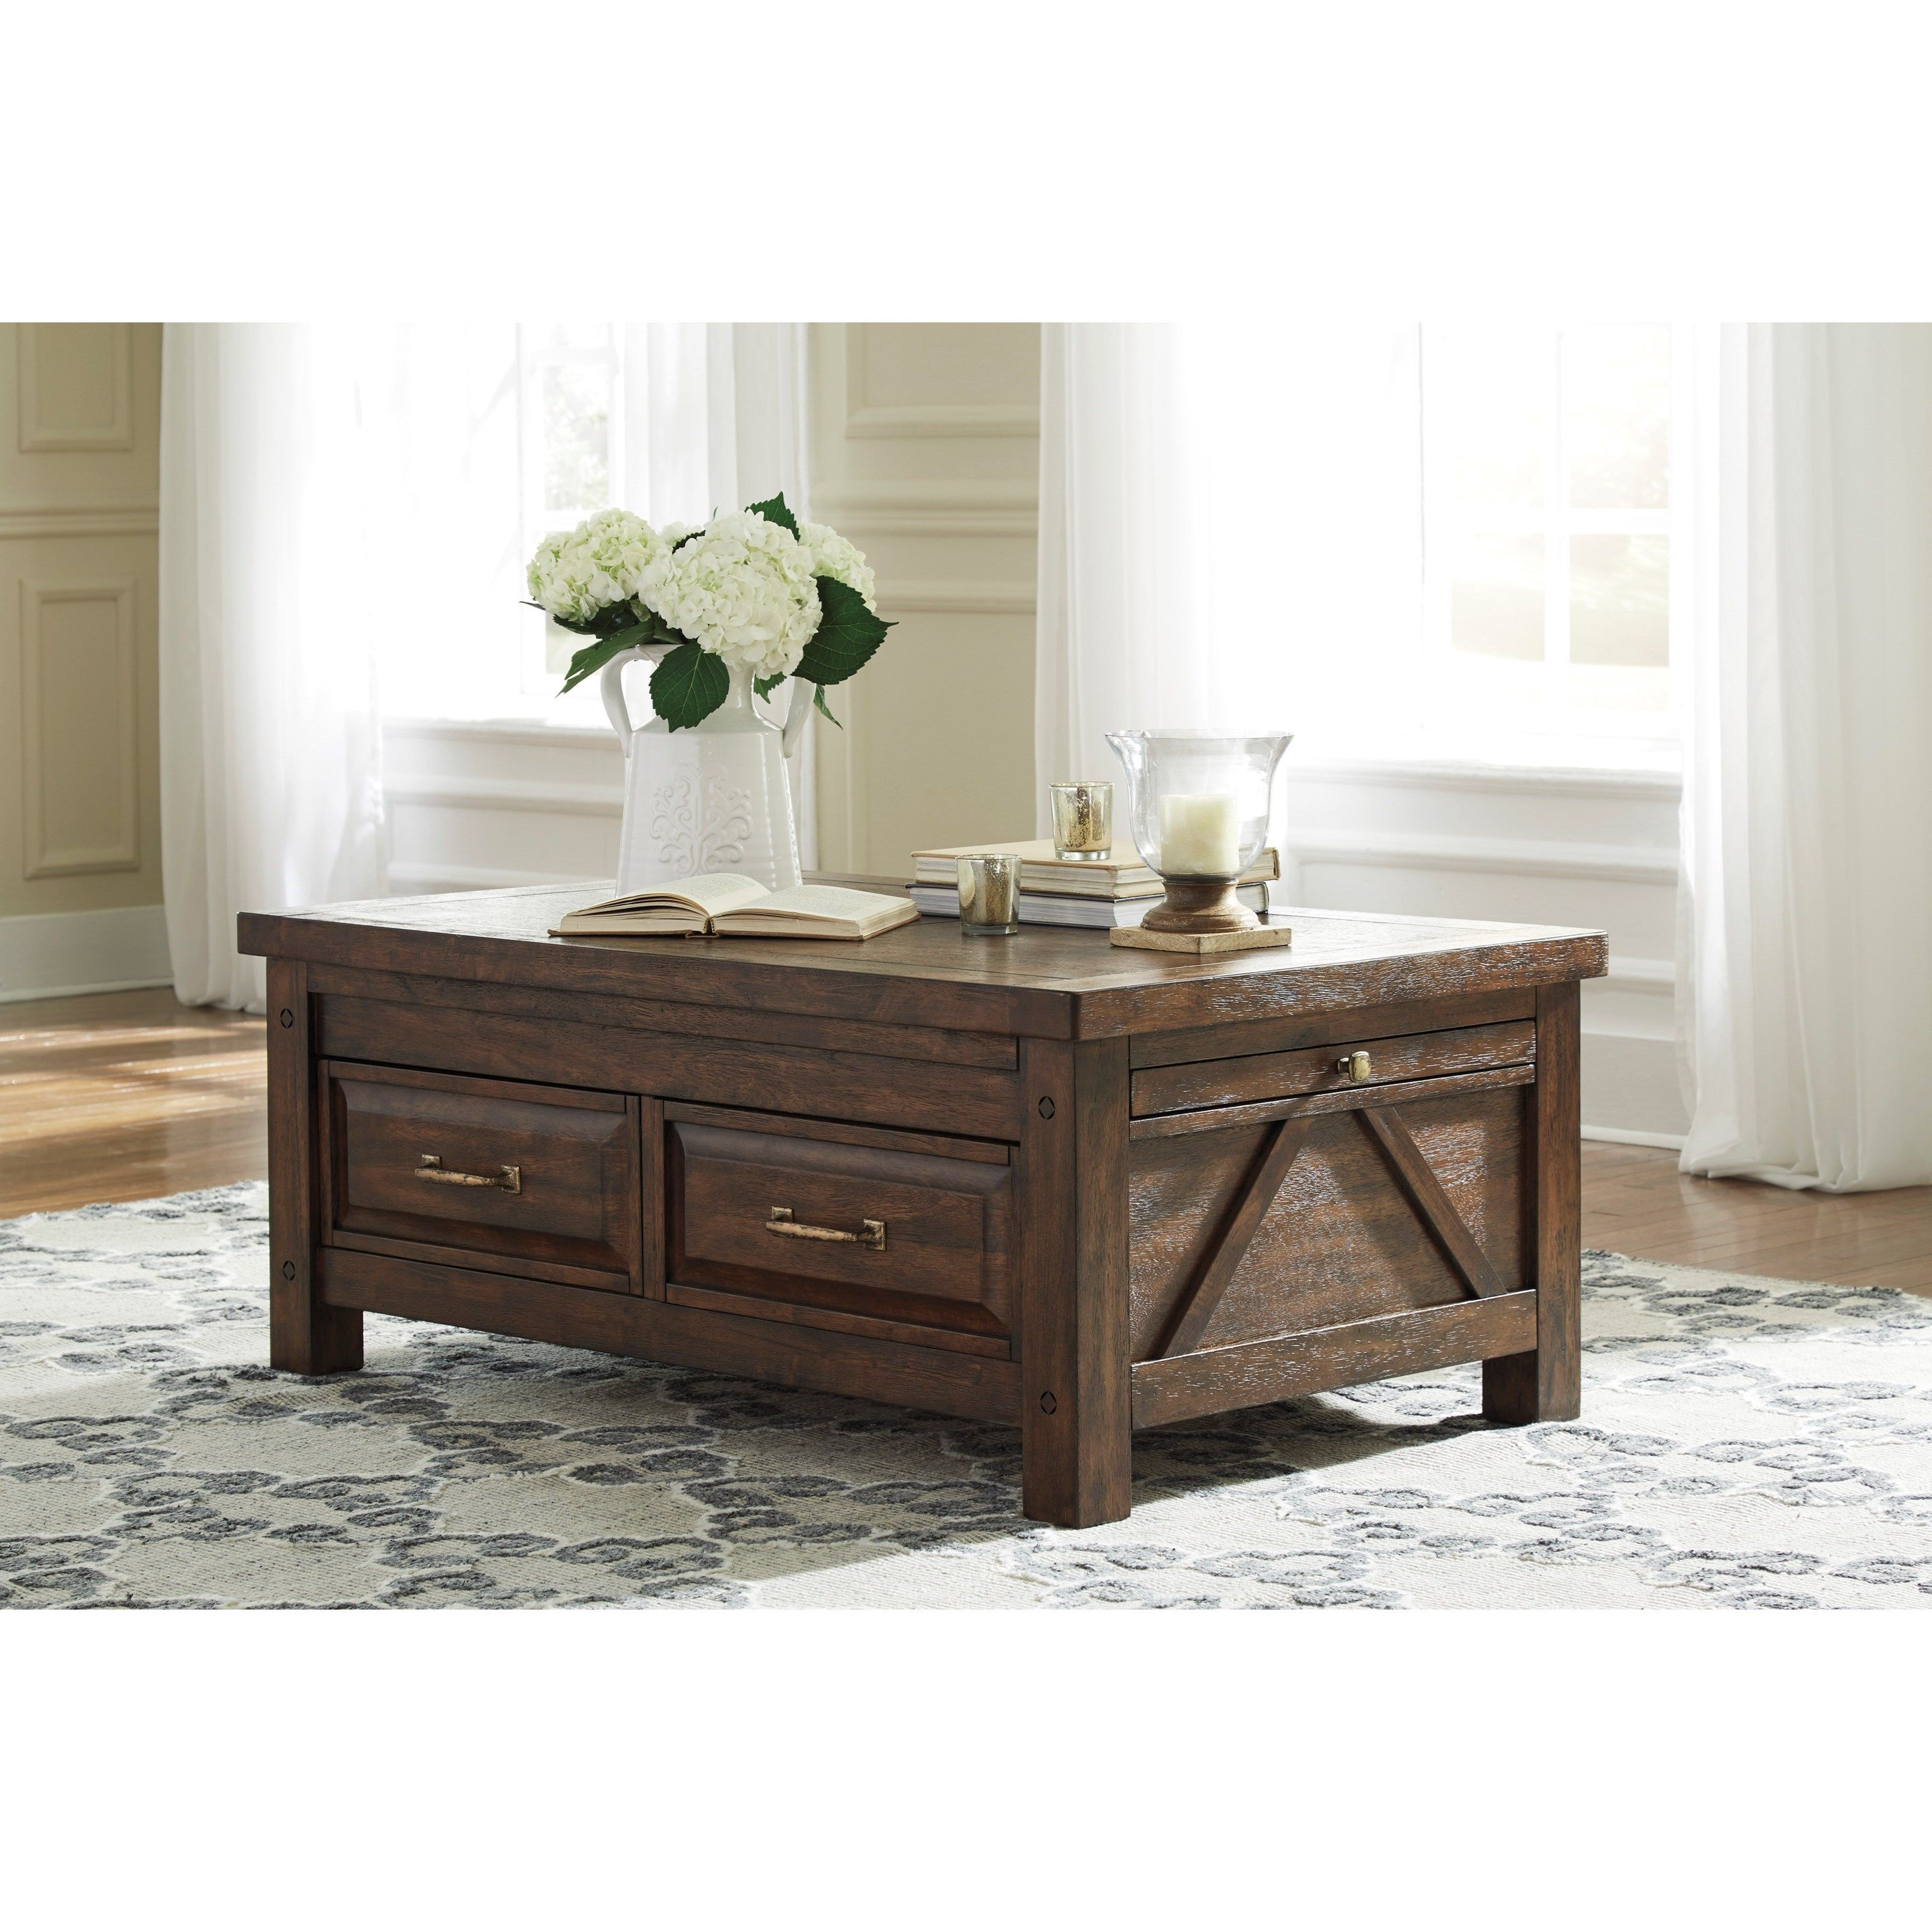 Cocktail table with storage drawers pullout tray